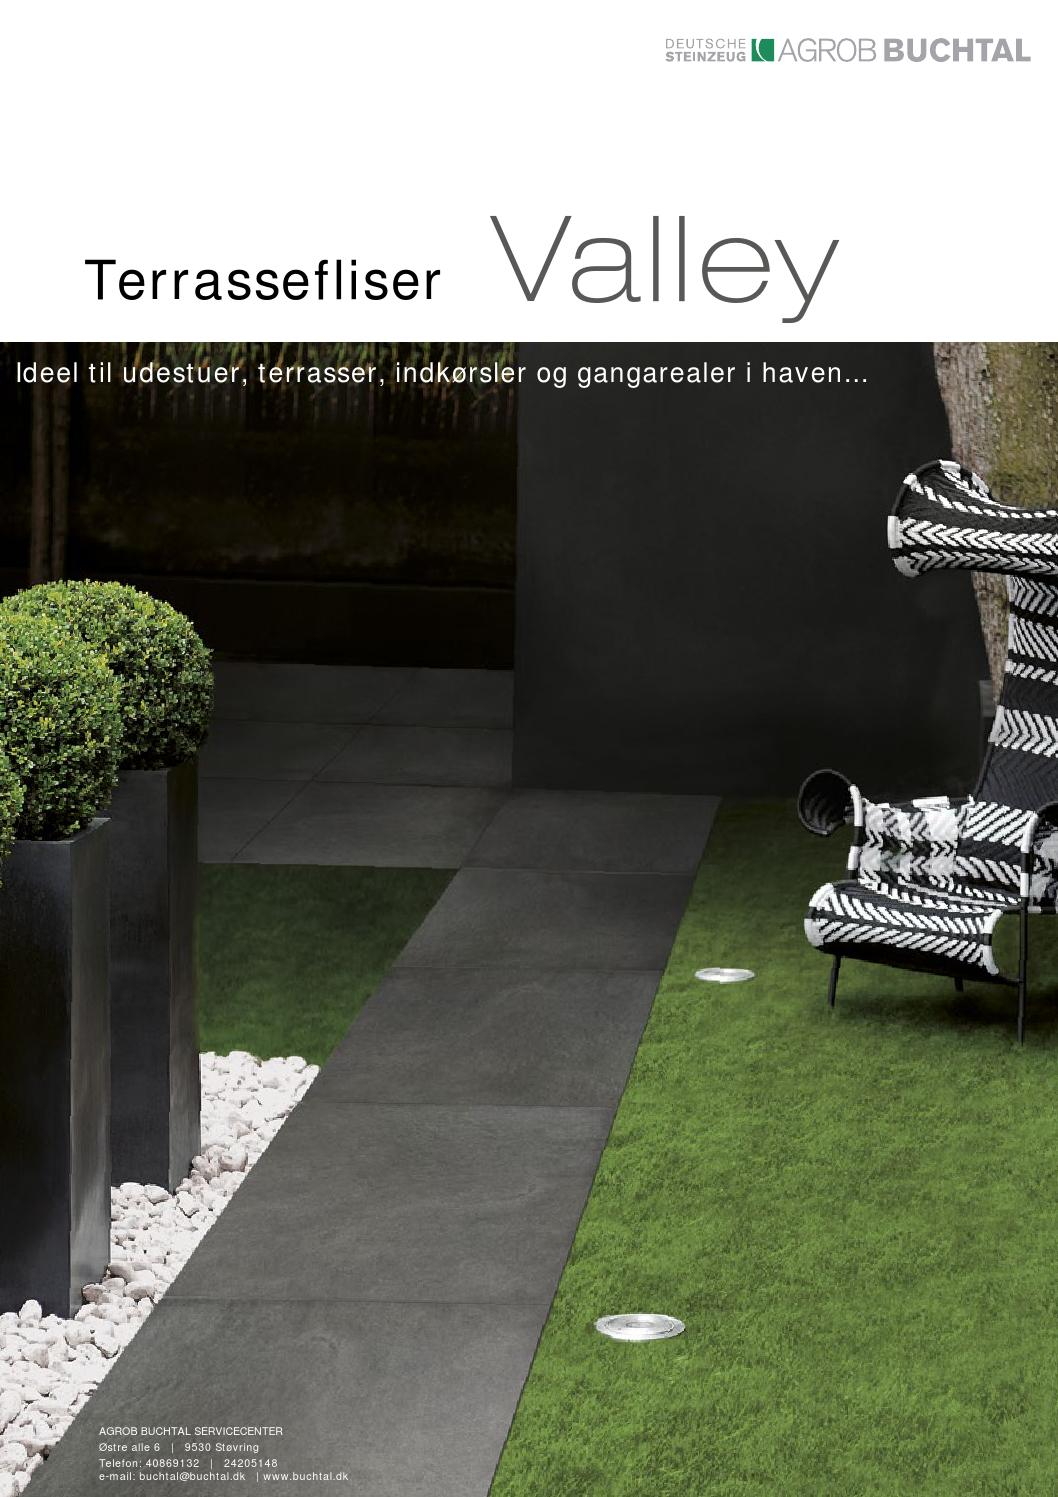 valley terrassefliser 2013 by agrob buchtal dk issuu. Black Bedroom Furniture Sets. Home Design Ideas